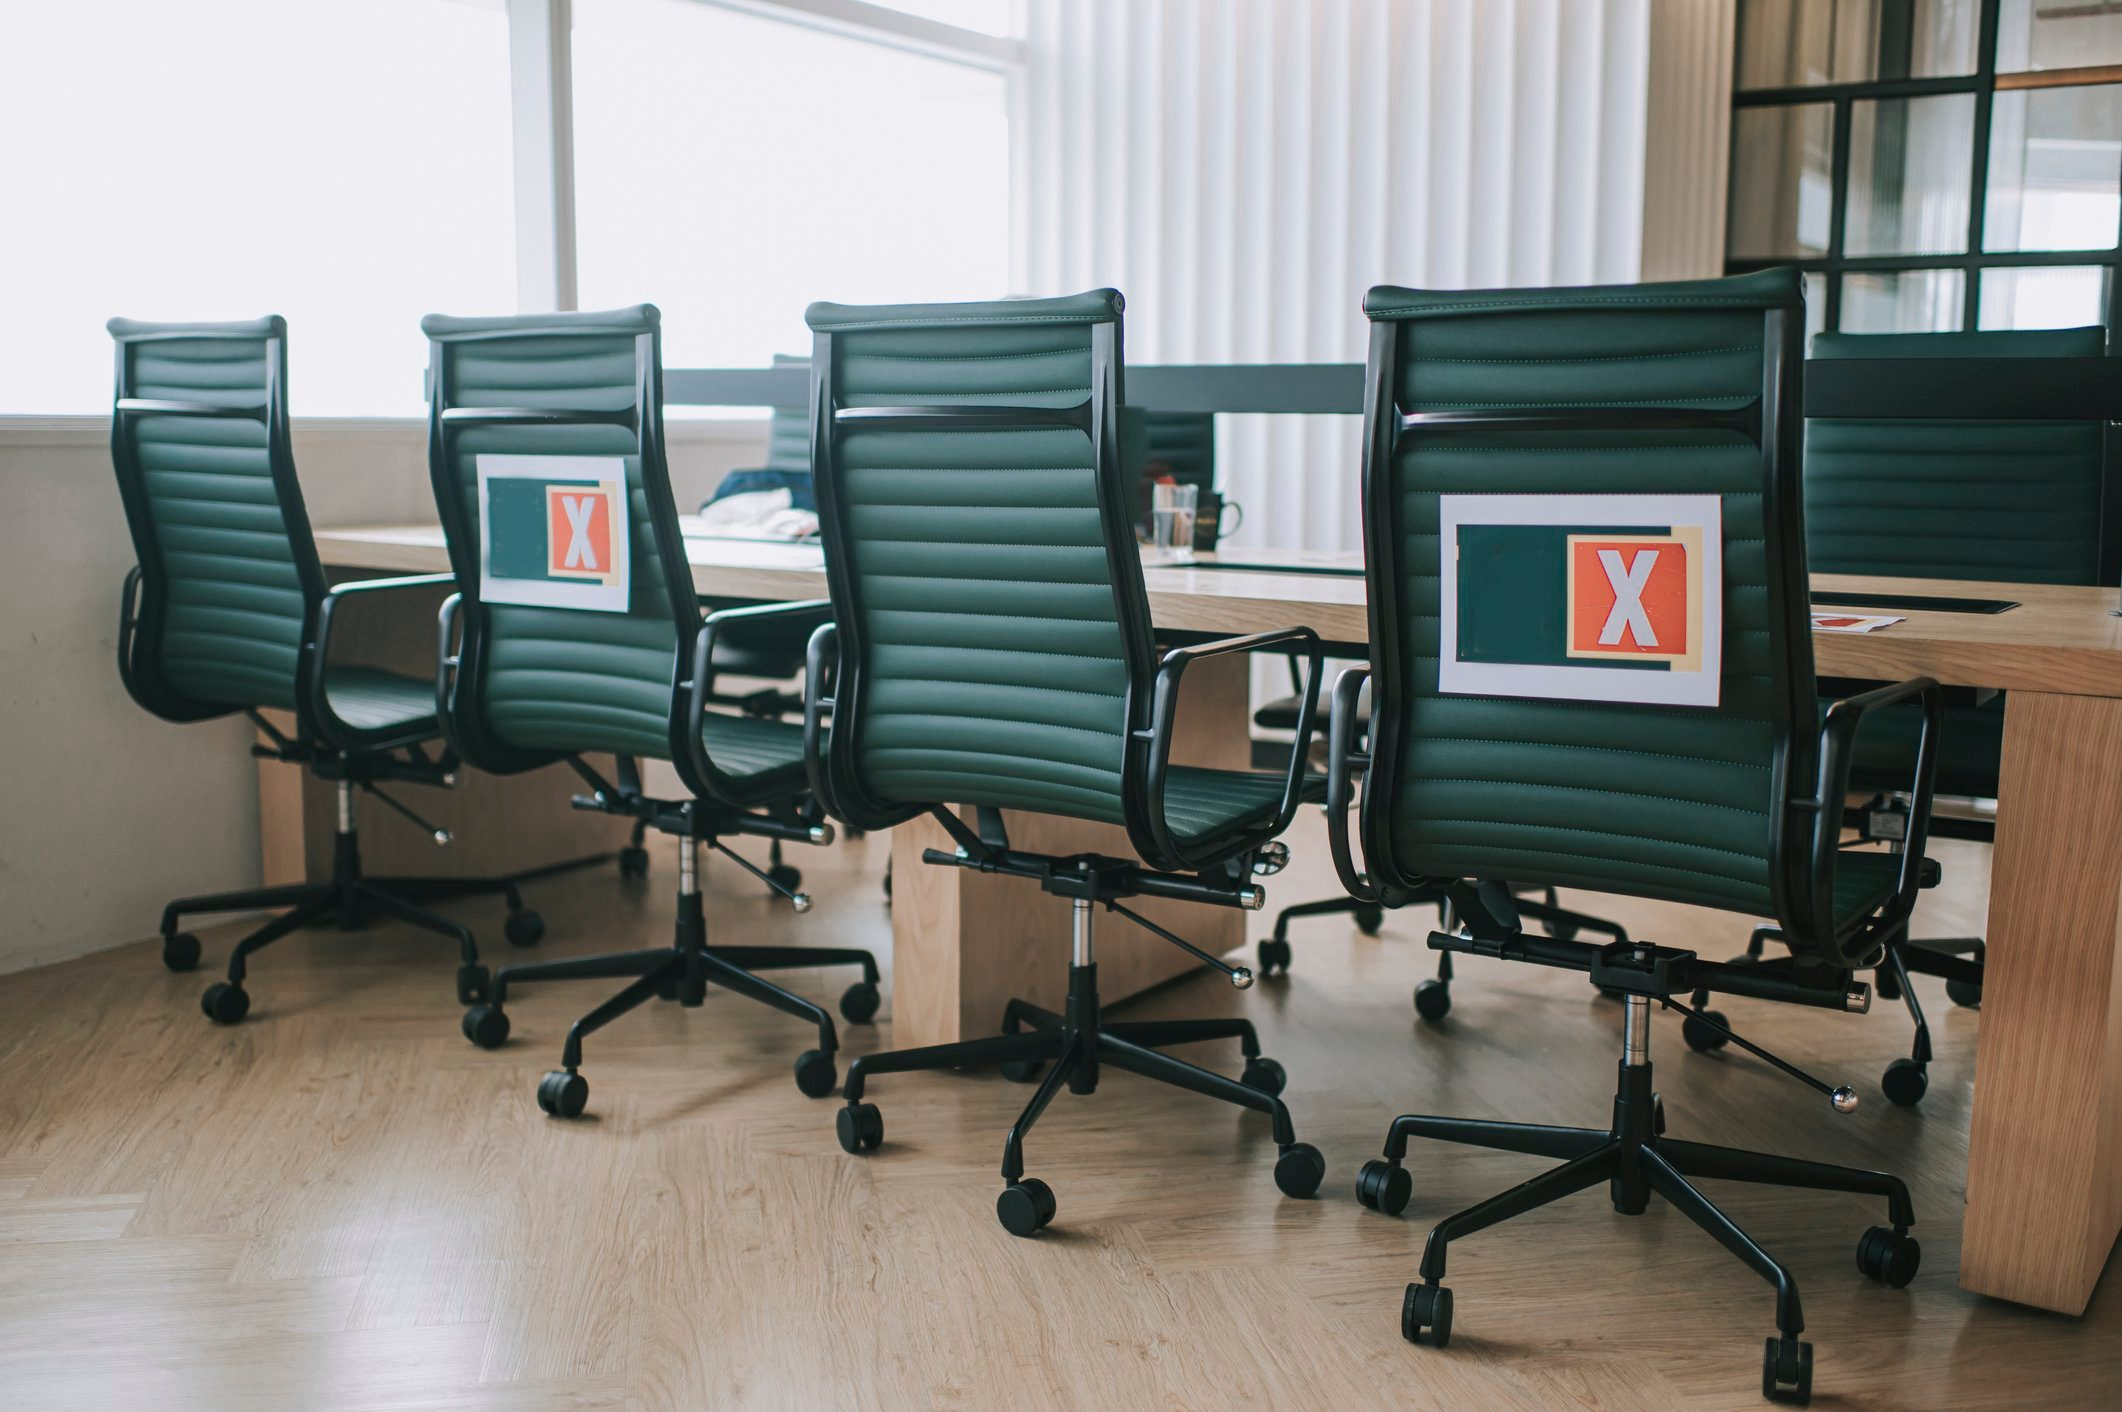 office work space social distancing